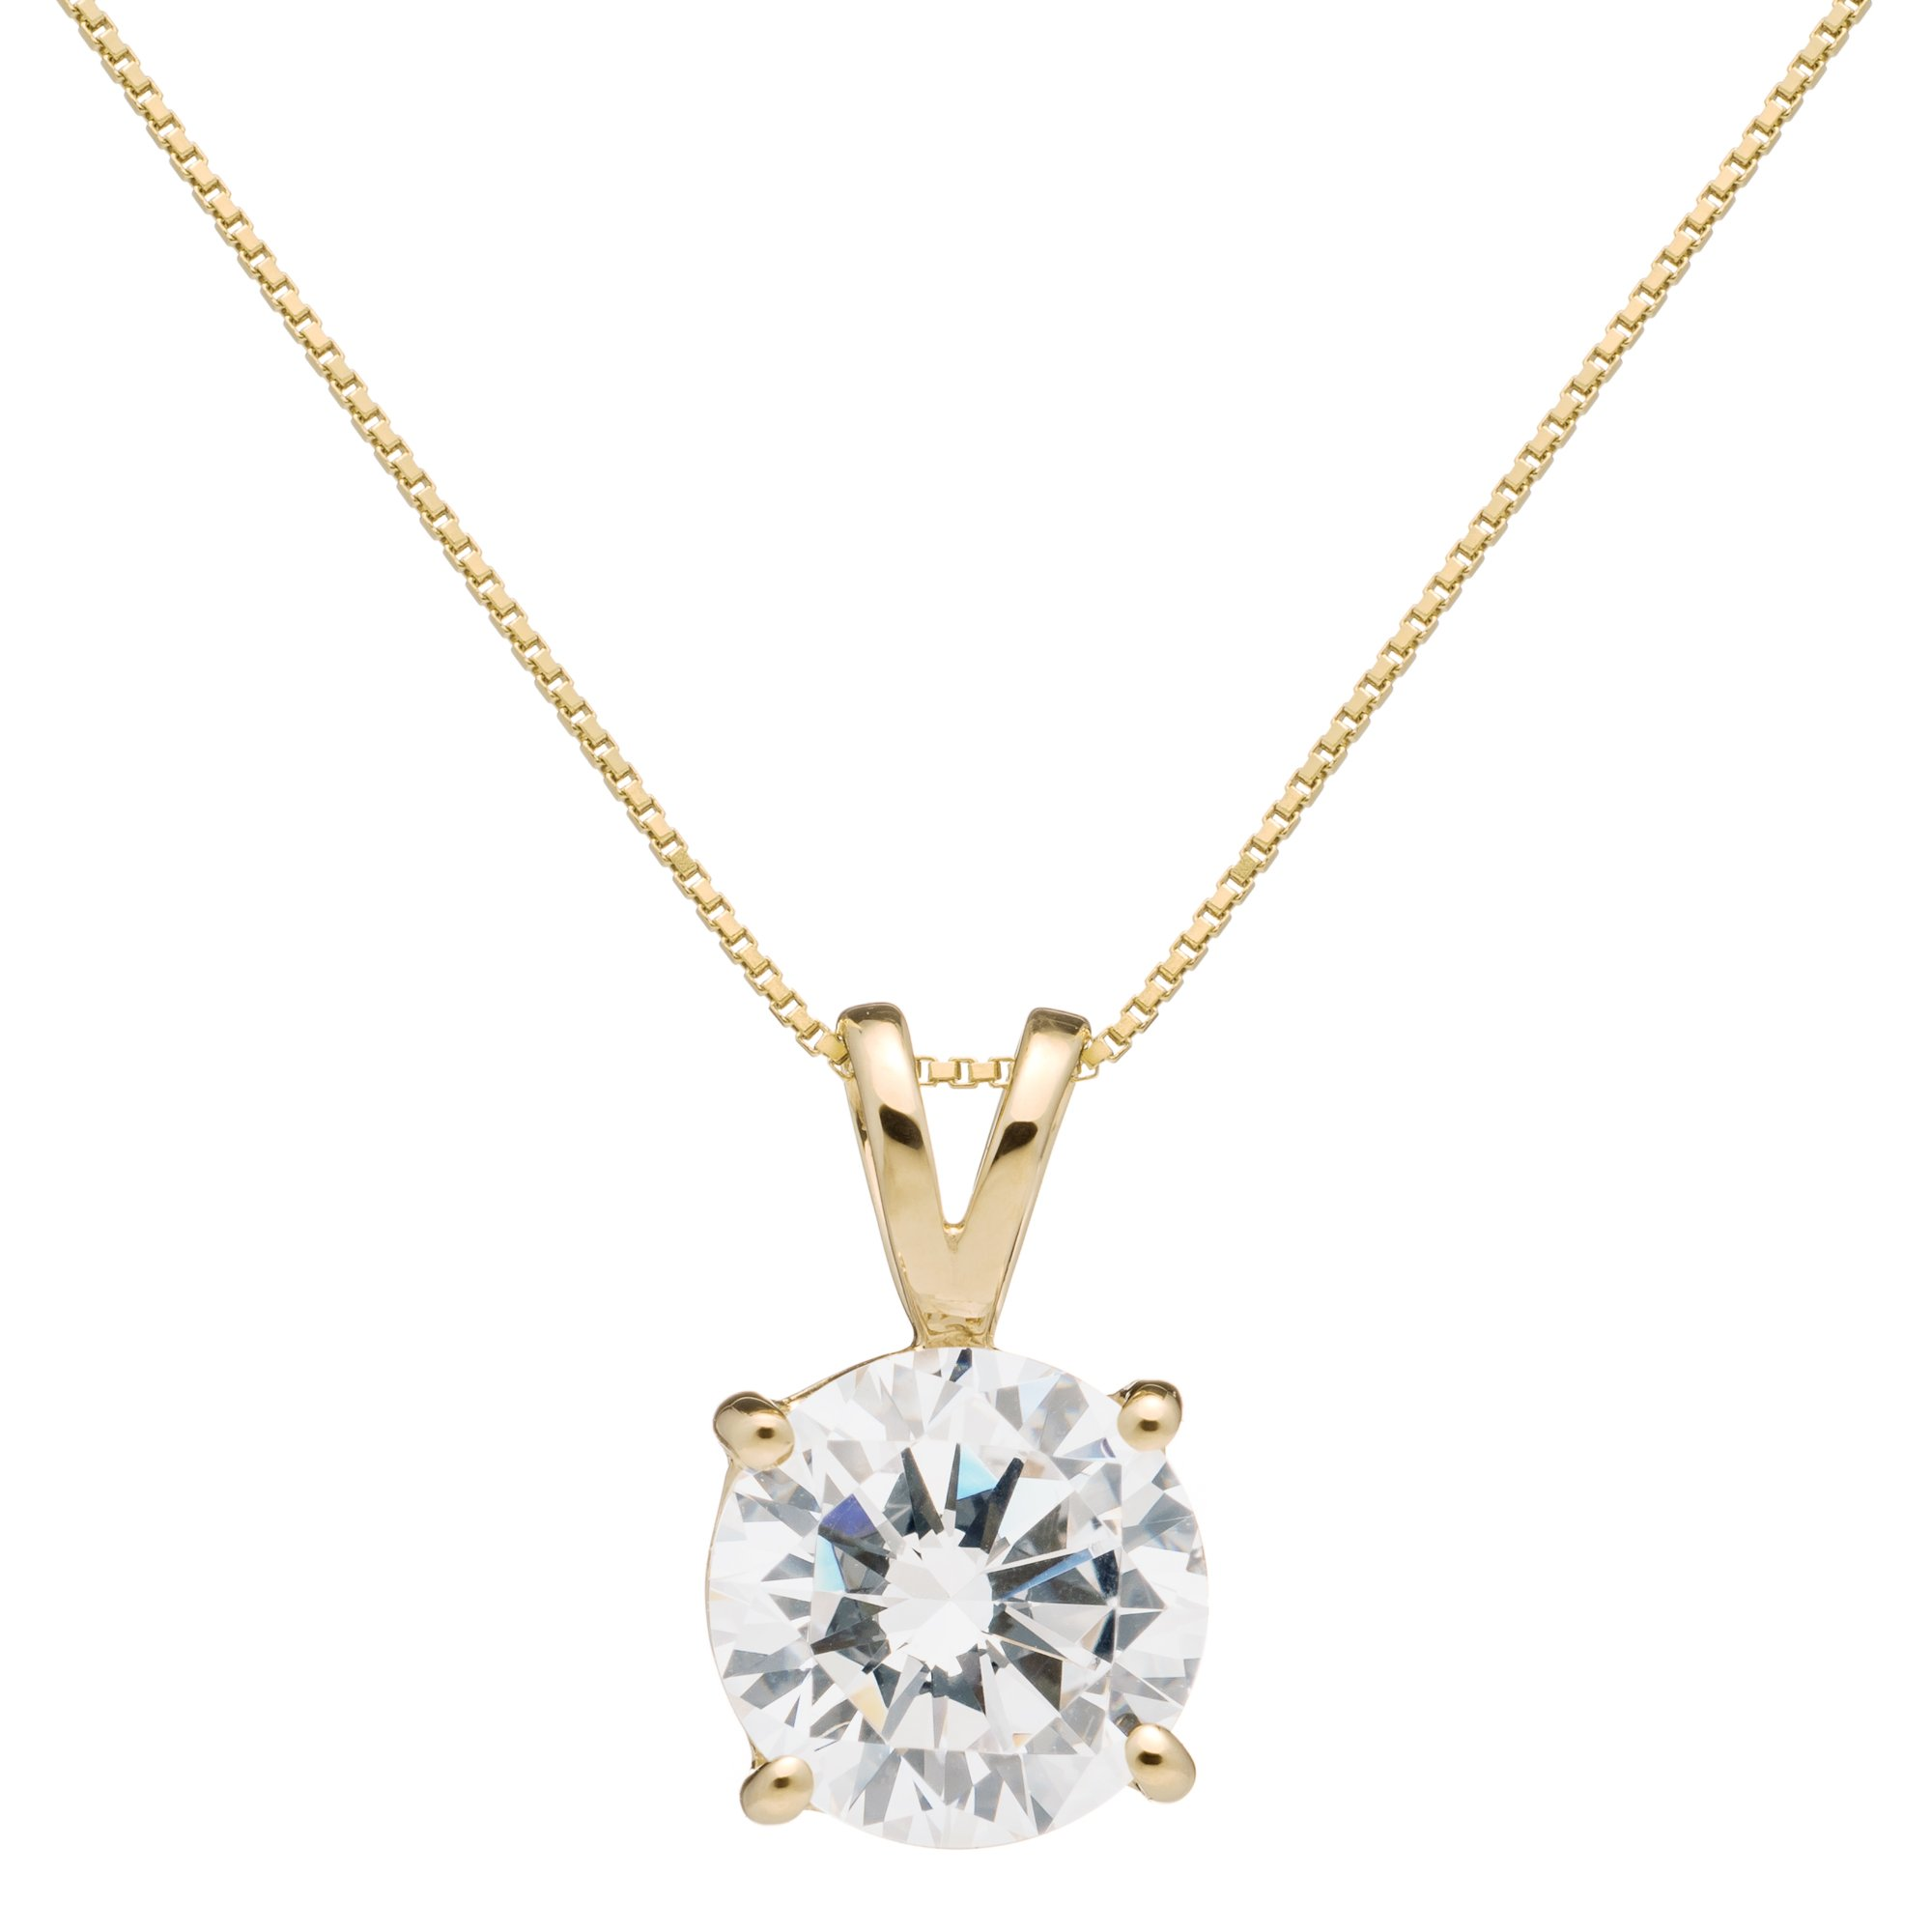 14K Solid Yellow Gold Round Cut Cubic Zirconia Solitaire Pendant Necklace (1.5 Carat), 16 inch .60mm Box Link Chain, Gift Box